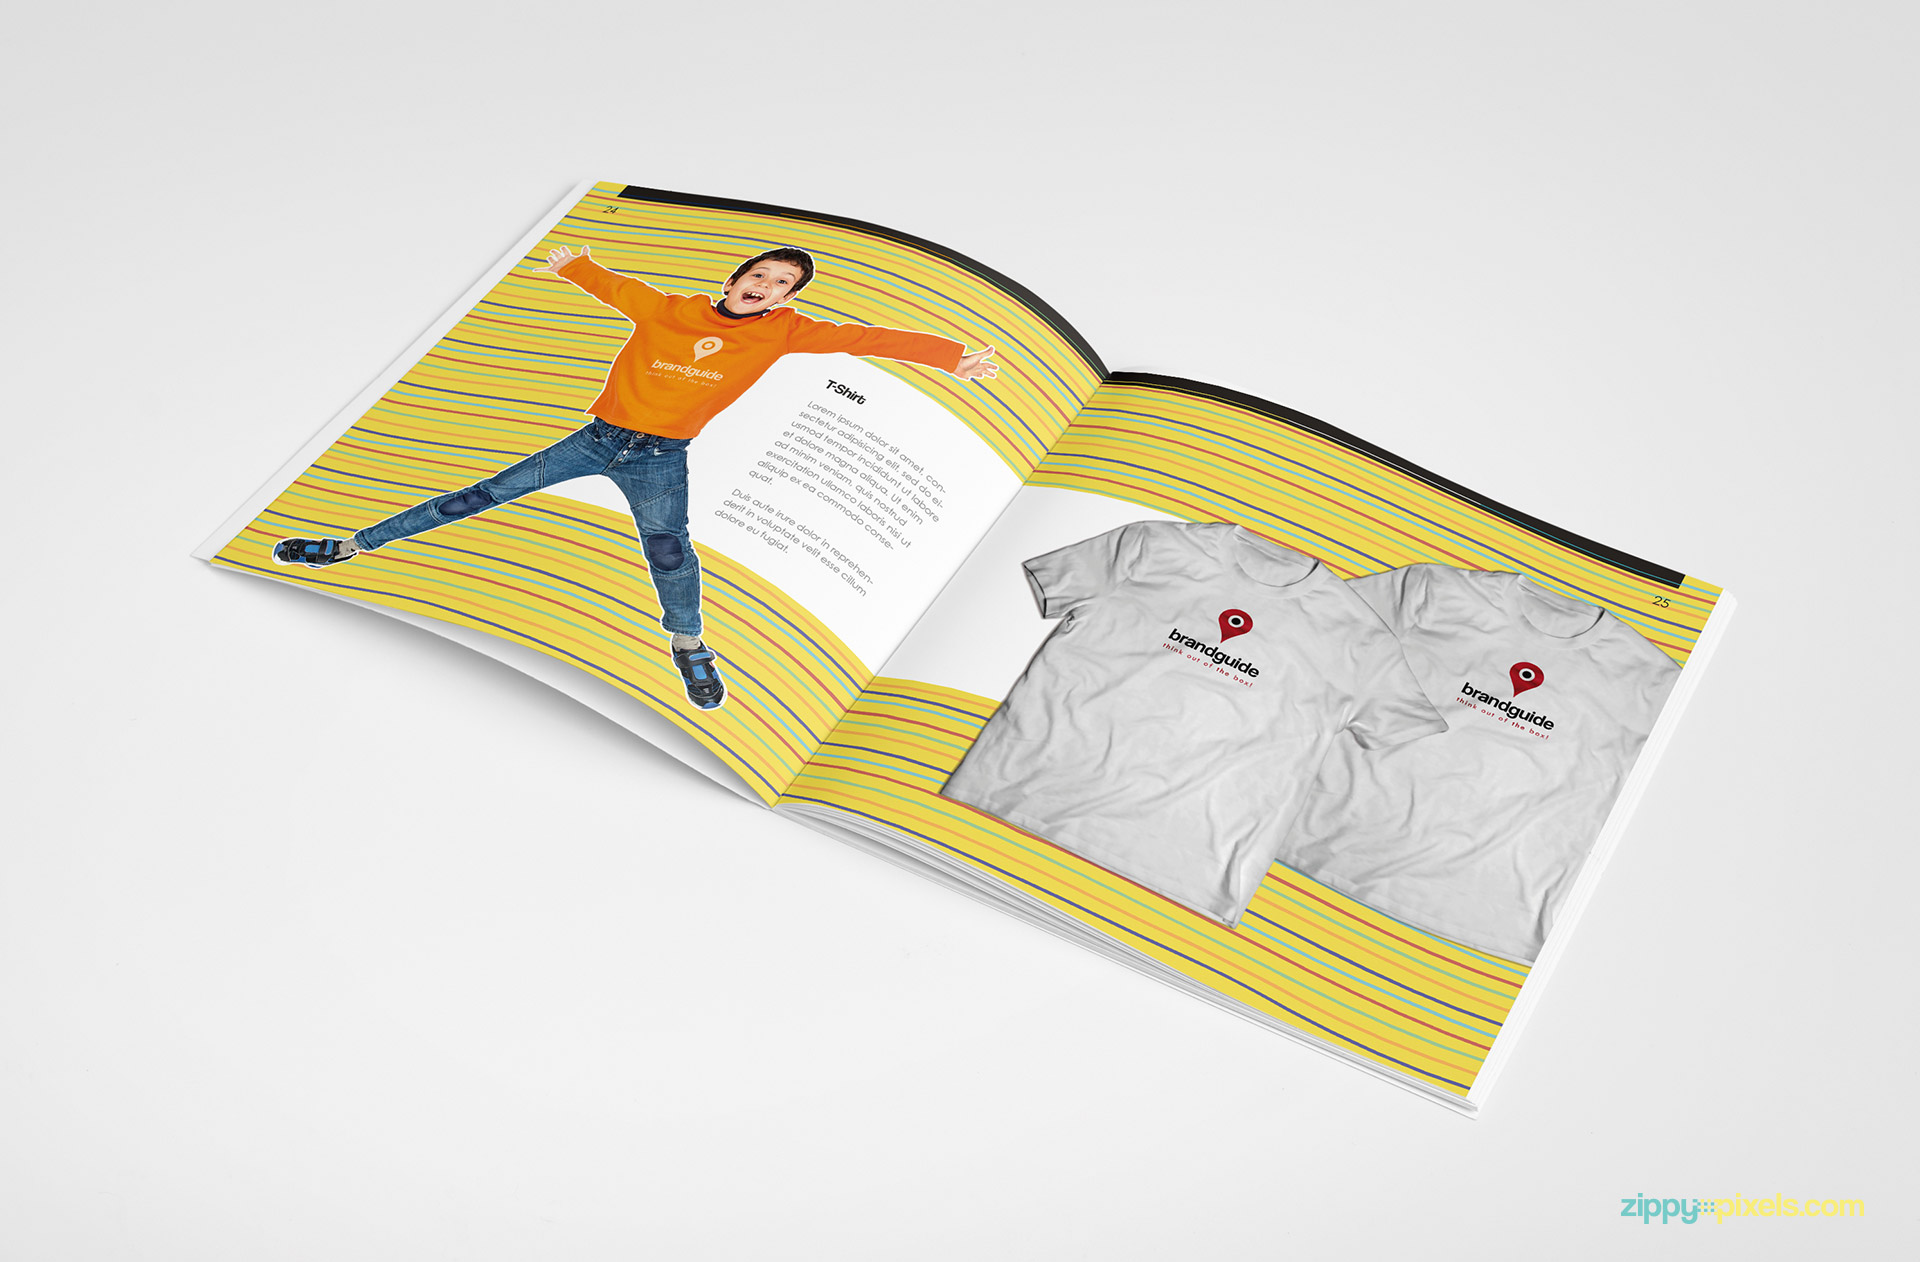 16-brand-book-12-children-t-shirts